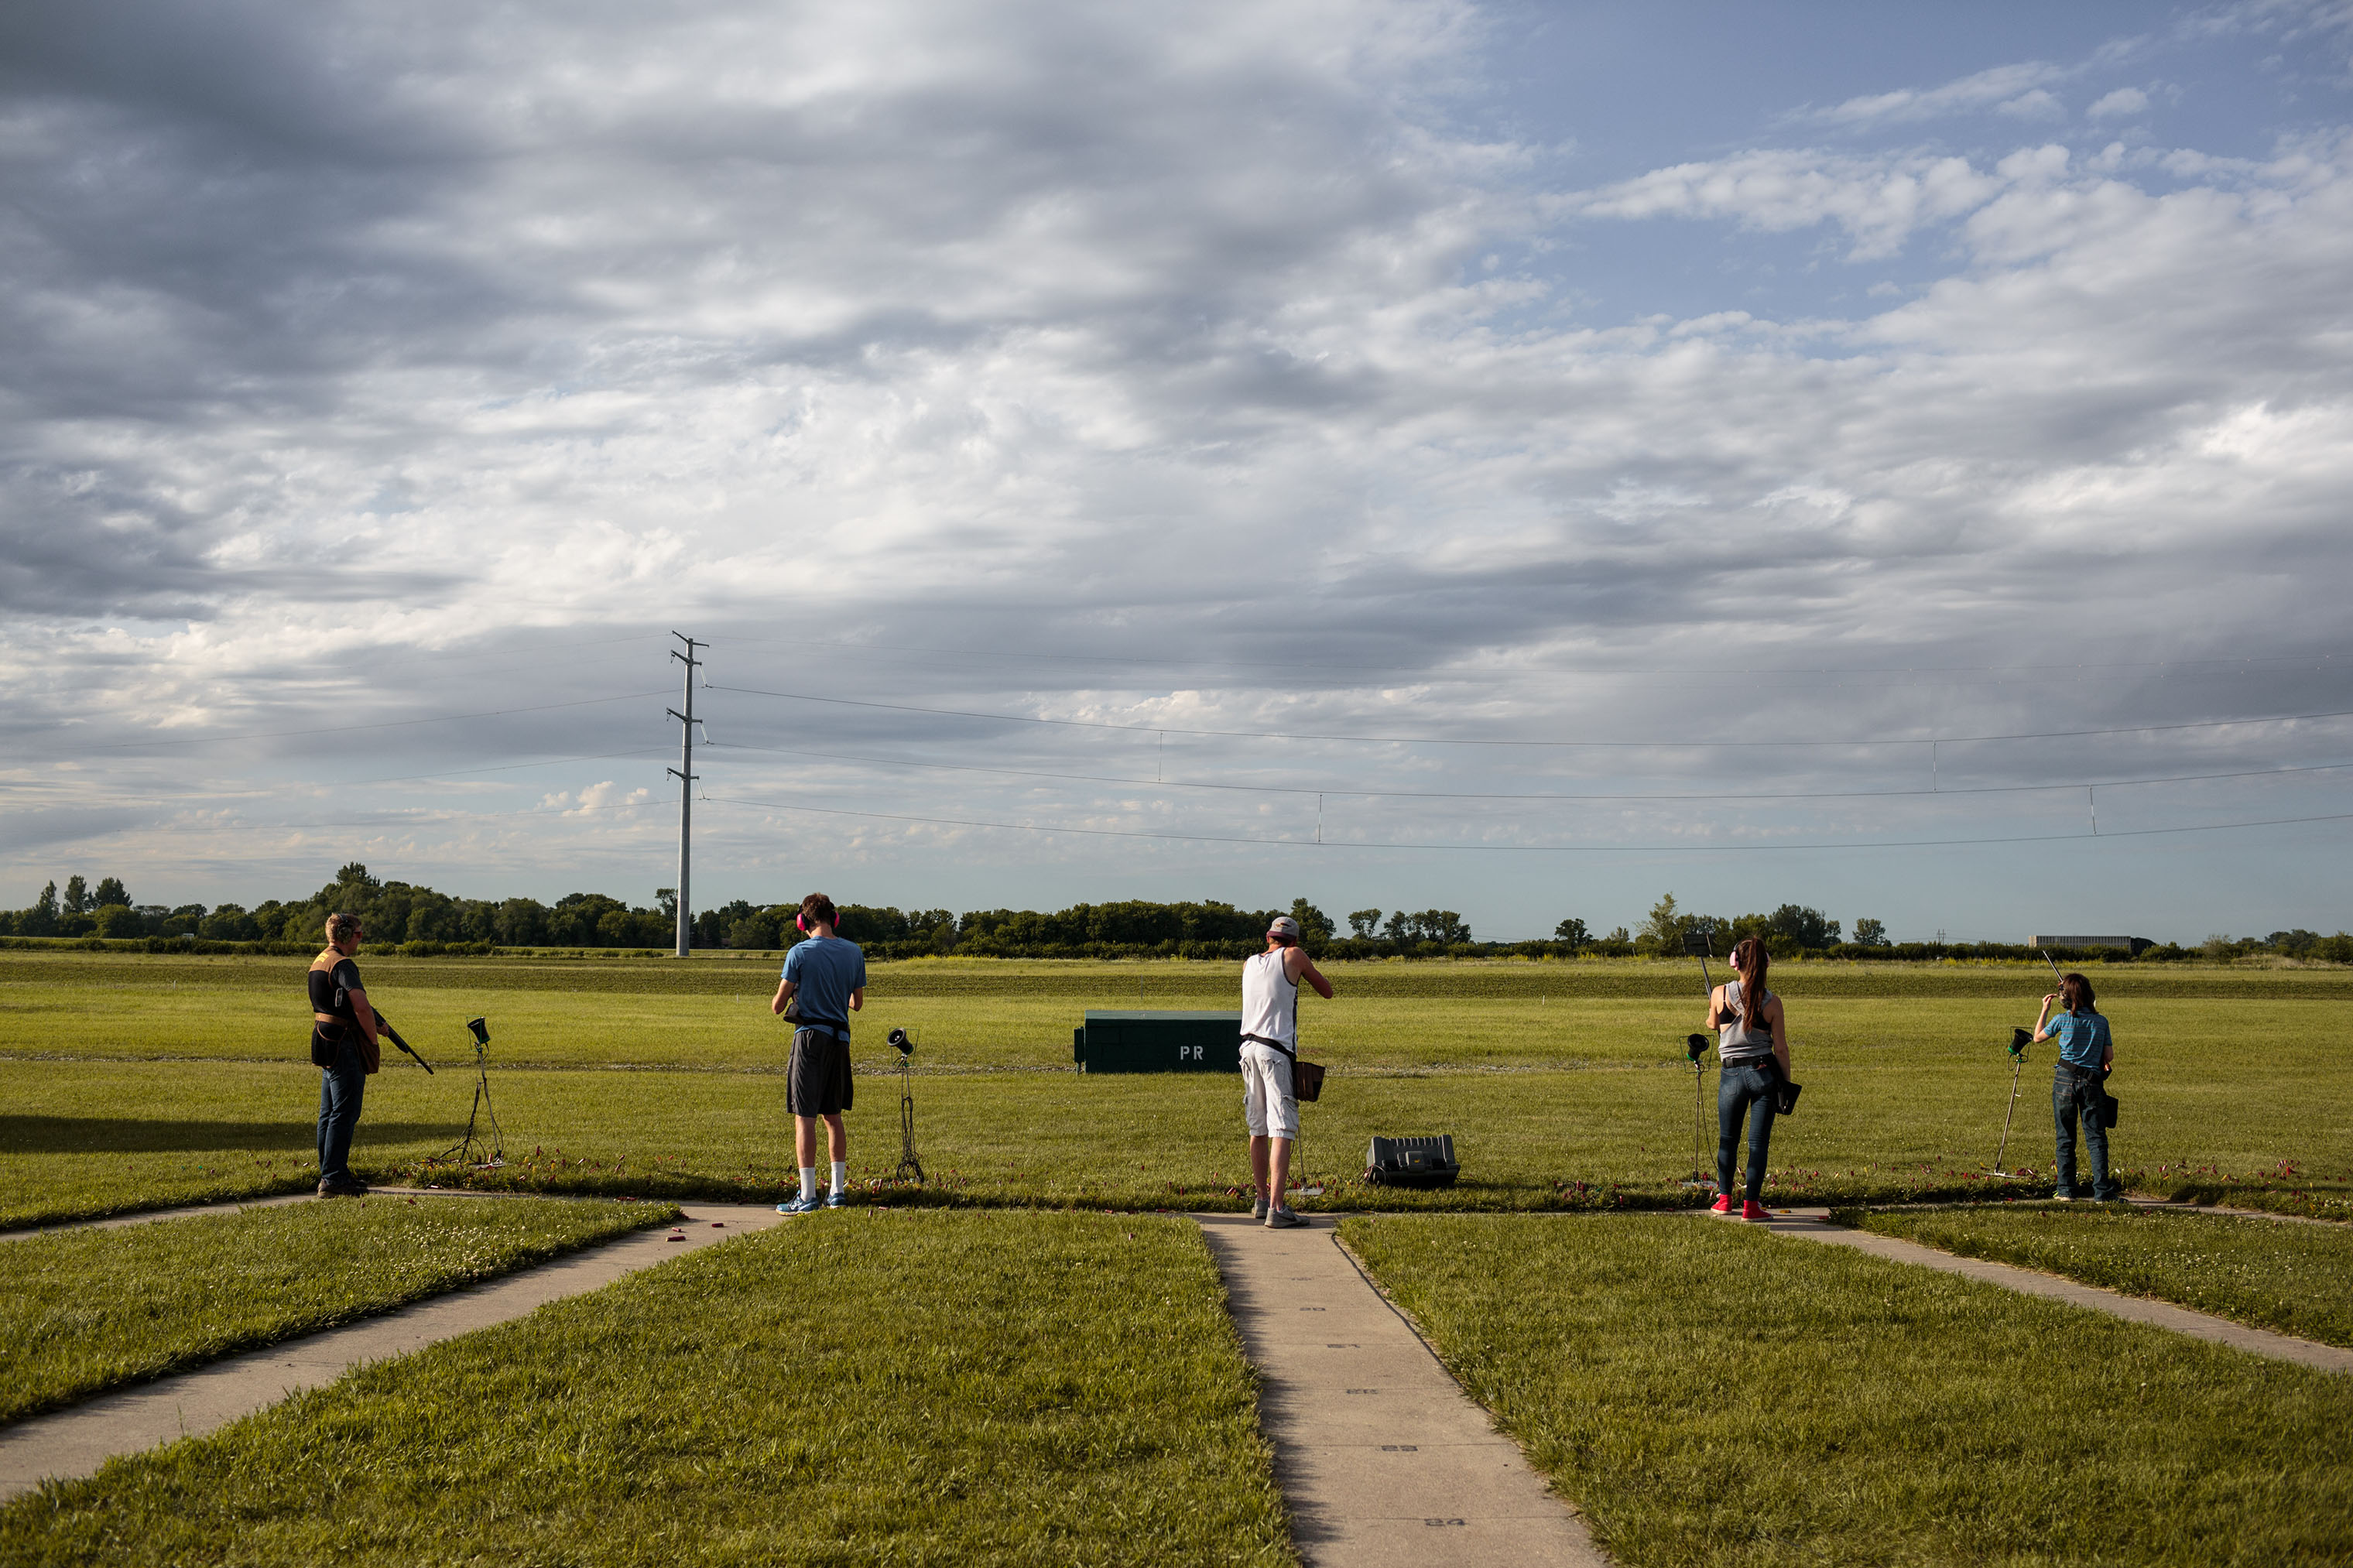 Students from Eyota practice shooting before competing at the trap shooting championship.